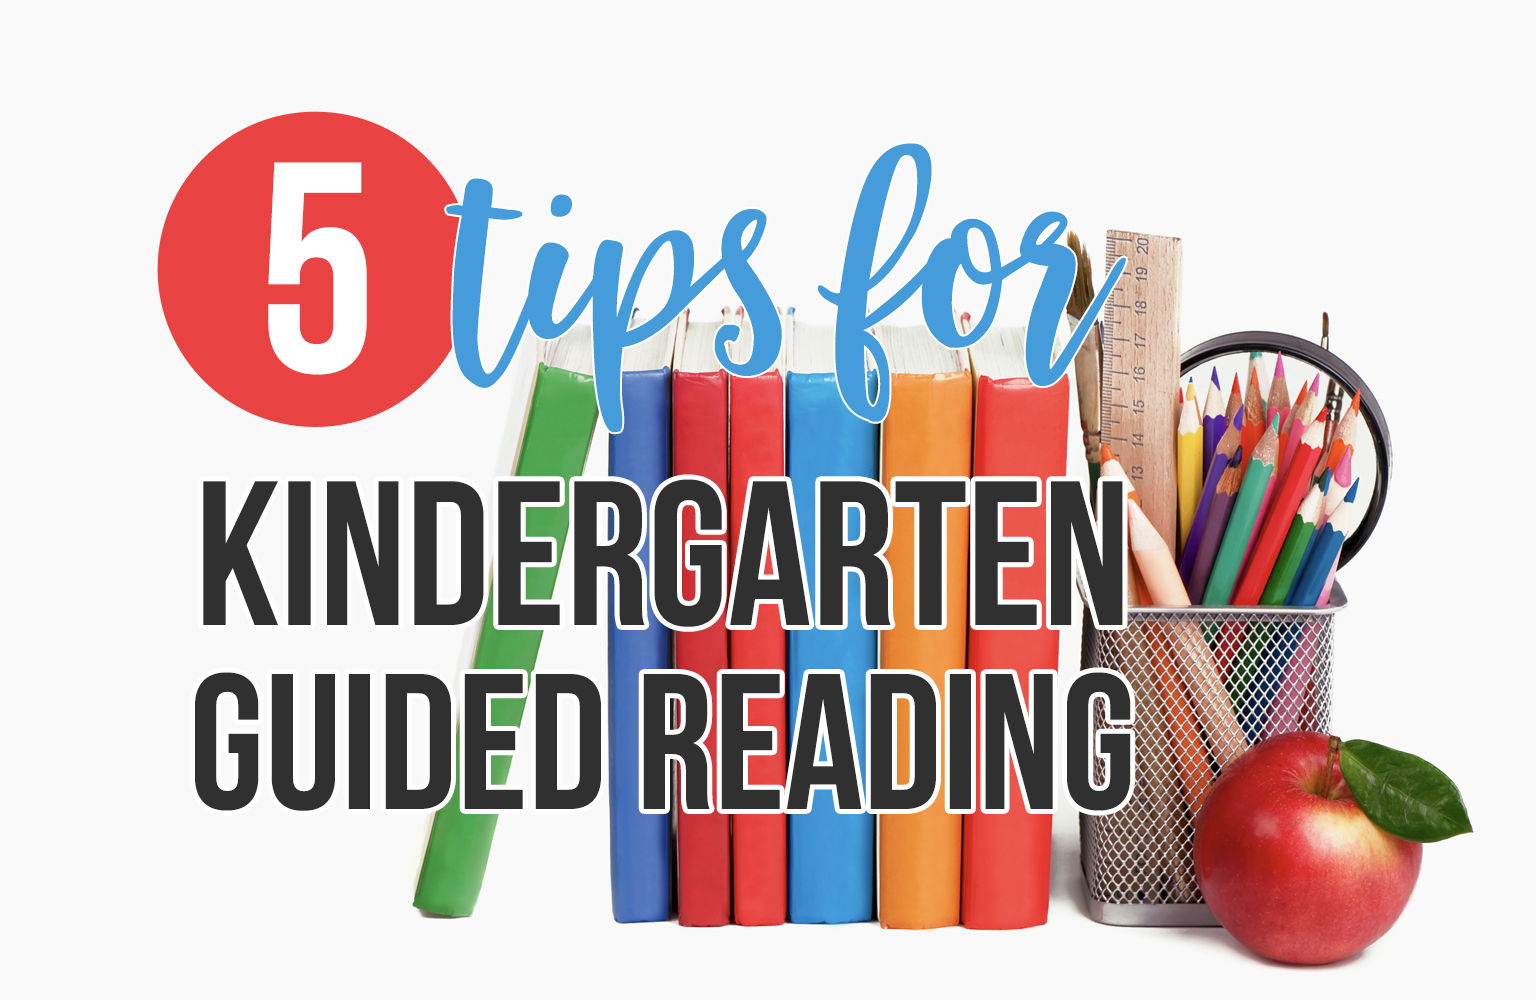 #3 is the most important! Five tips for guided reading in kindergarten.